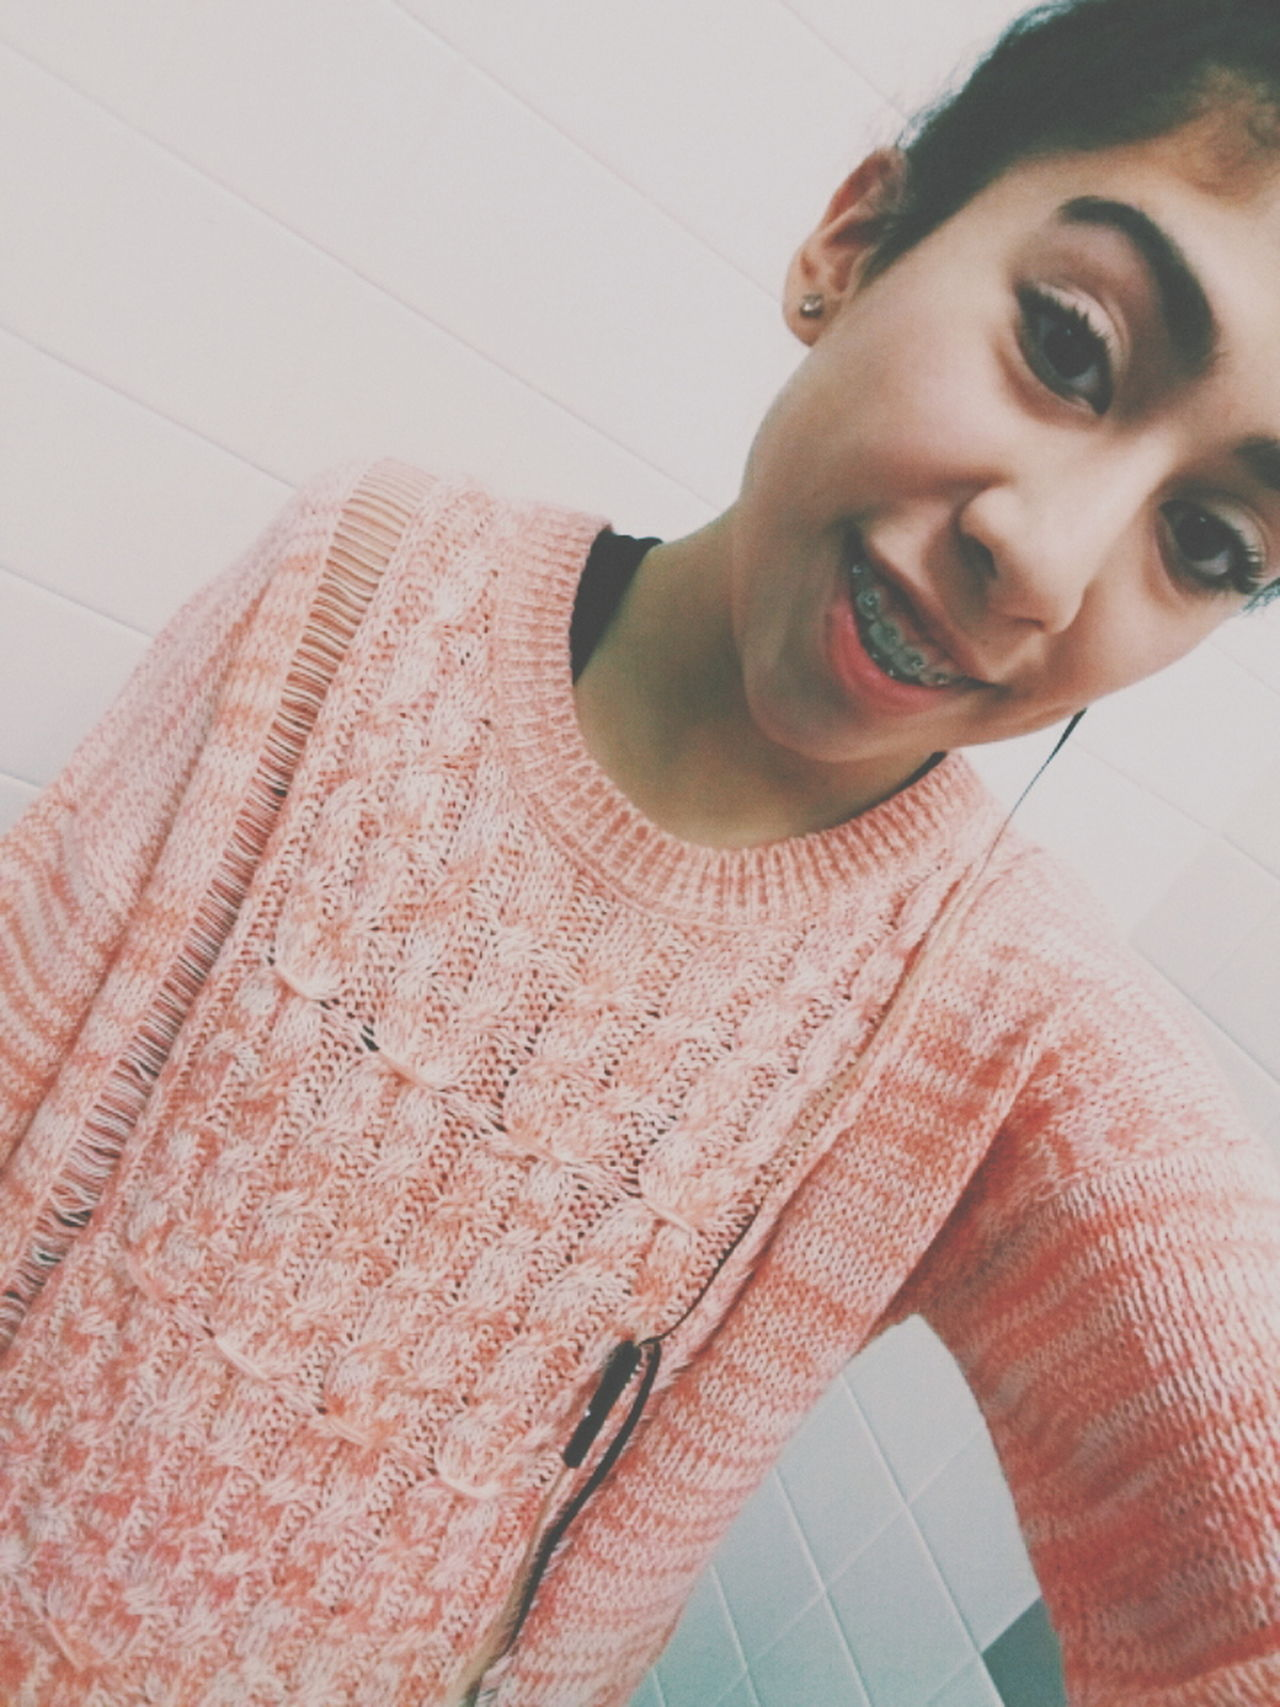 Selfie Selfportrait Me Chilling At School School Pic Pink Knitted Sweater Goodday Followme